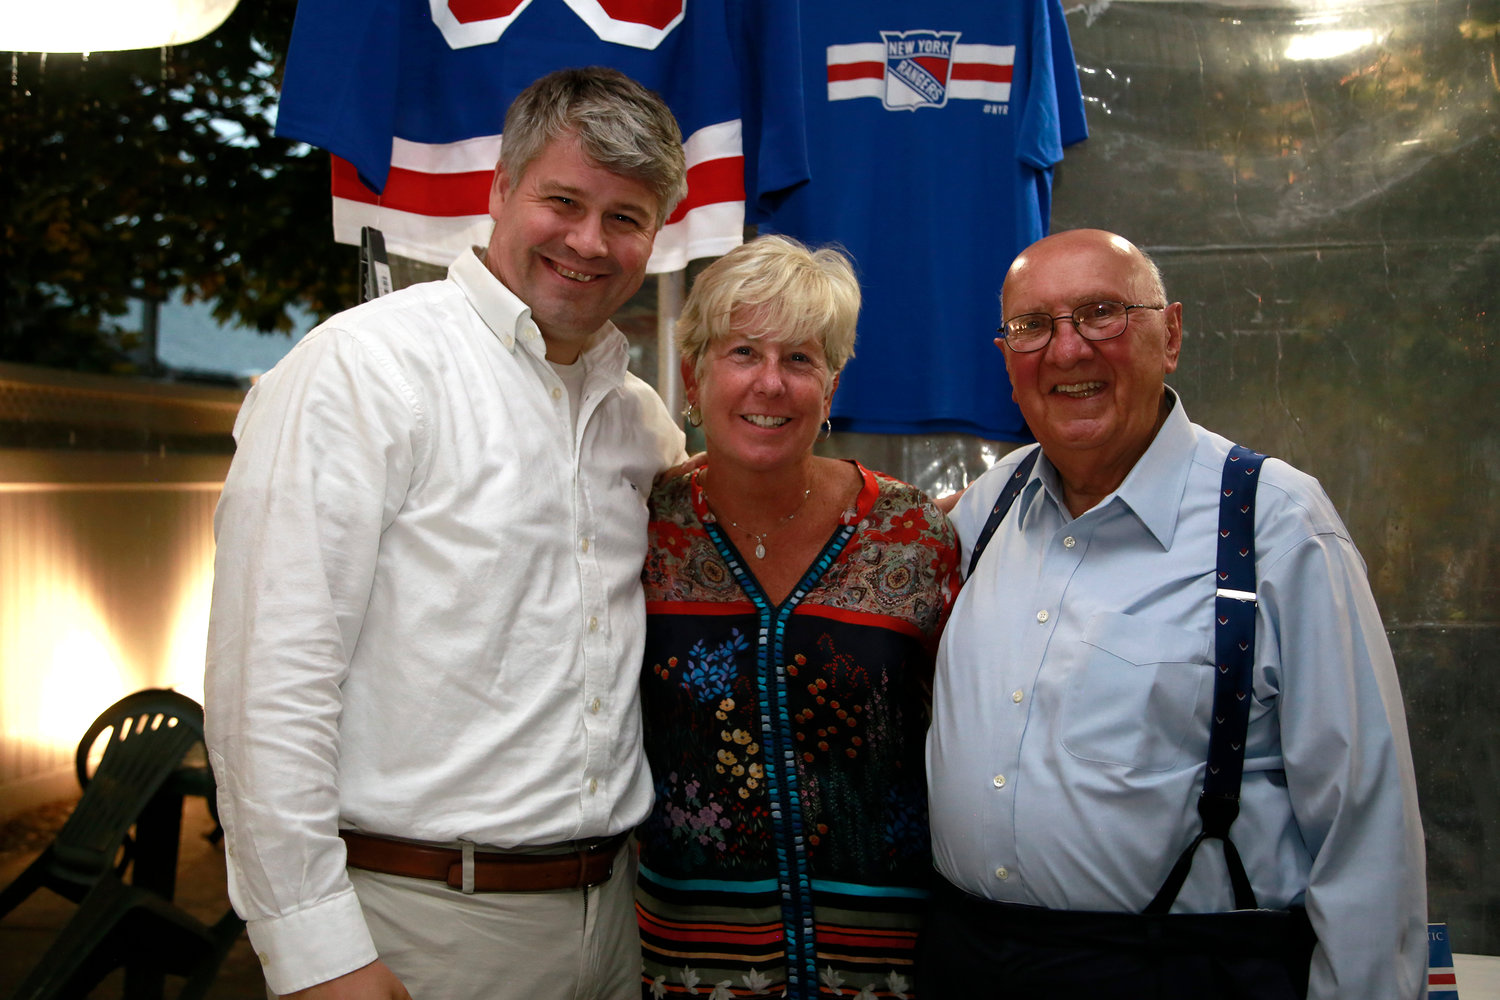 Malverne Mayor Keith Corbett, left, with former mayors Patti Ann McDonald and Joseph Canzoneri.